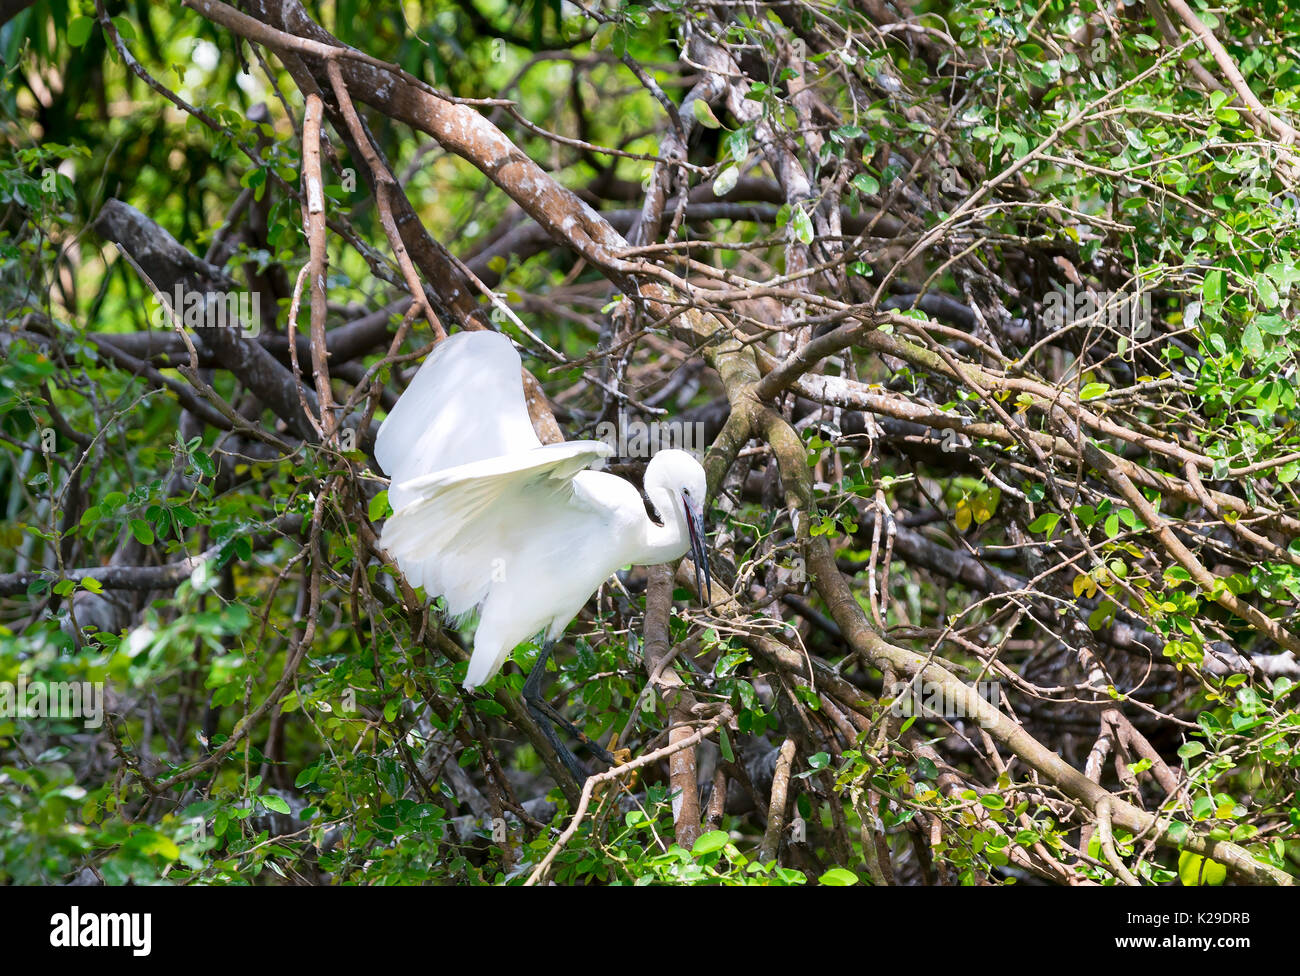 heron baby in nest stockfotos heron baby in nest bilder alamy. Black Bedroom Furniture Sets. Home Design Ideas